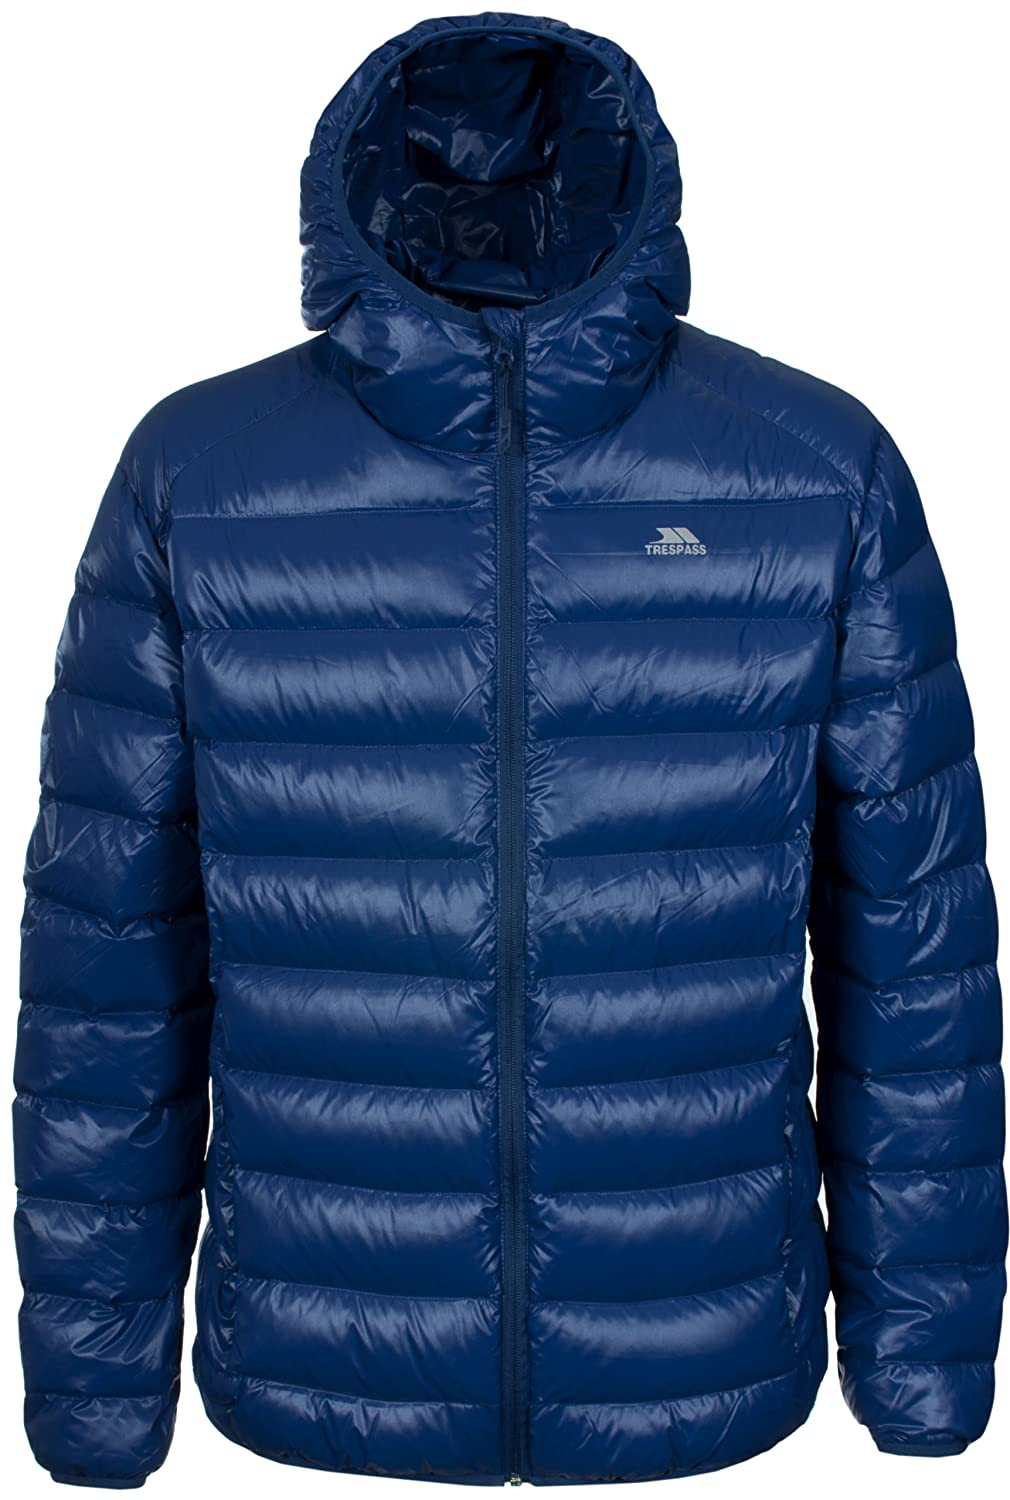 Trespass Damen Daunenjacke Men'Ramírez